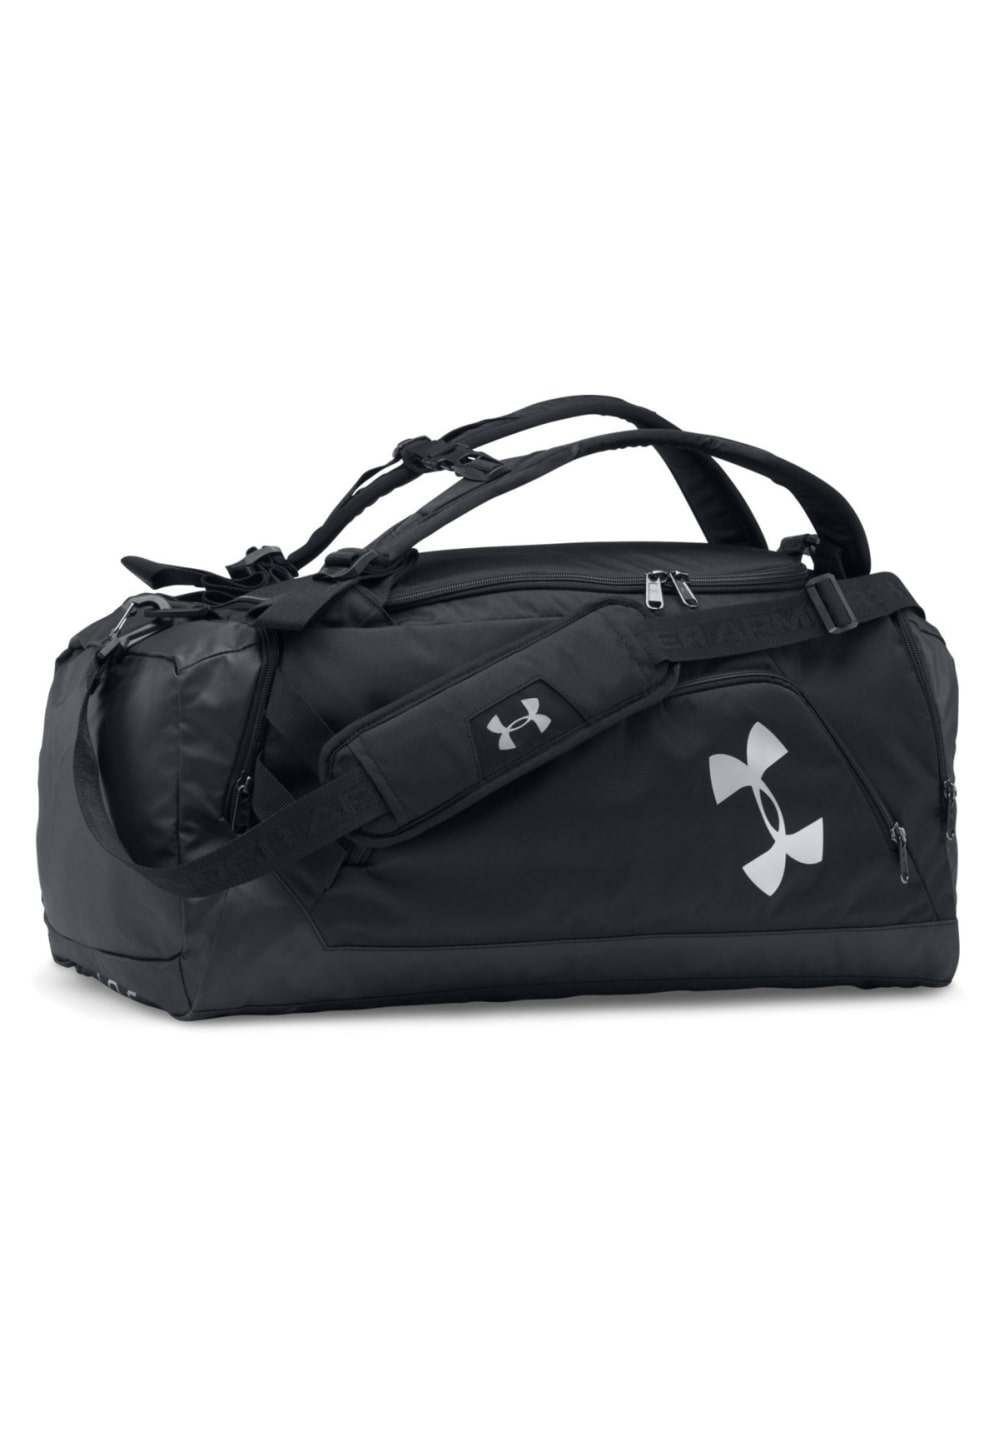 763a692840cb4 Under Armour Contain Duo+ - Sports bags - Black